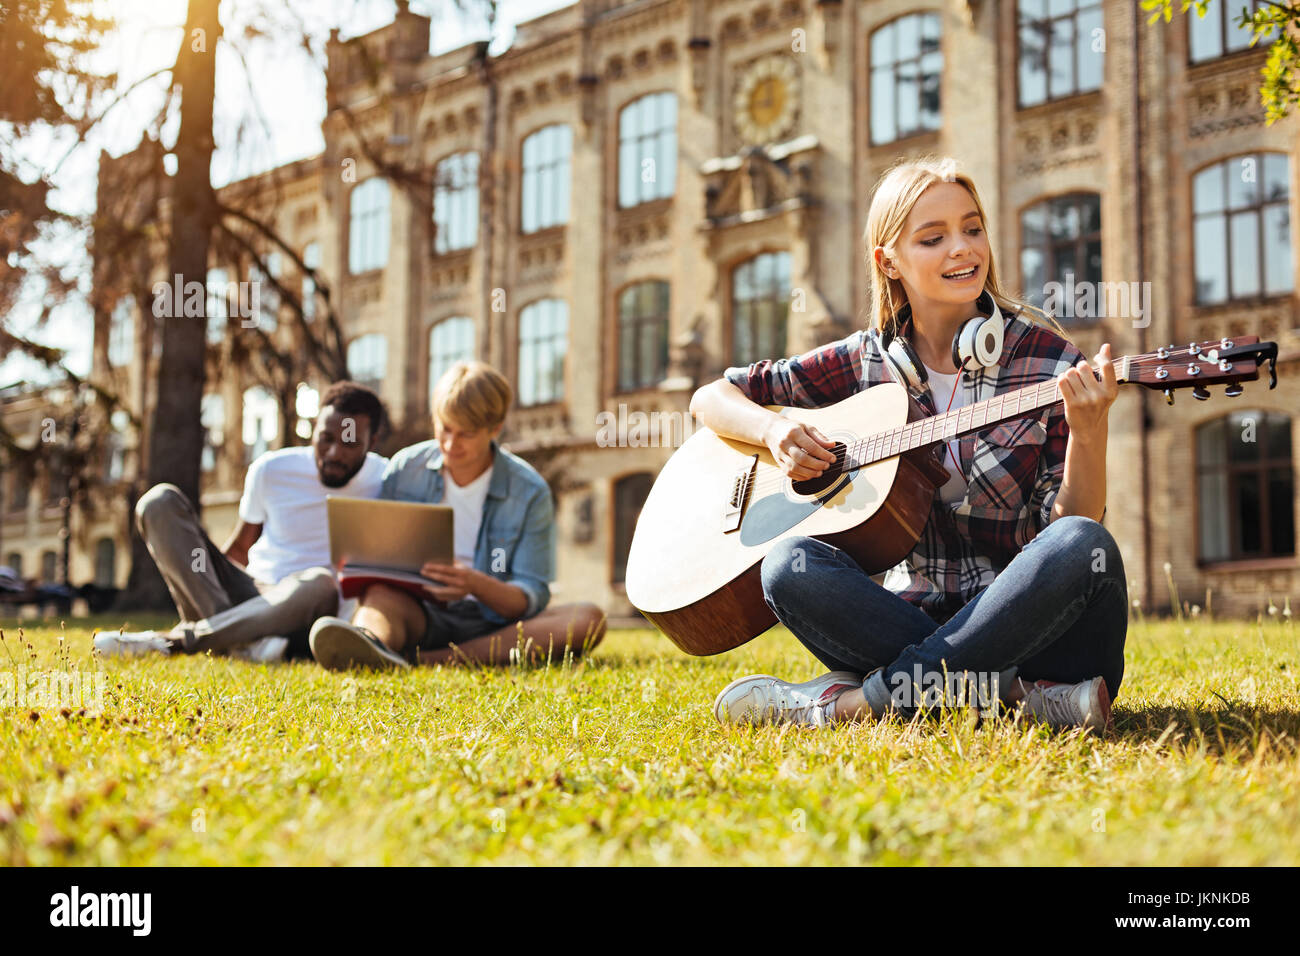 Committed young woman practicing her music skills - Stock Image